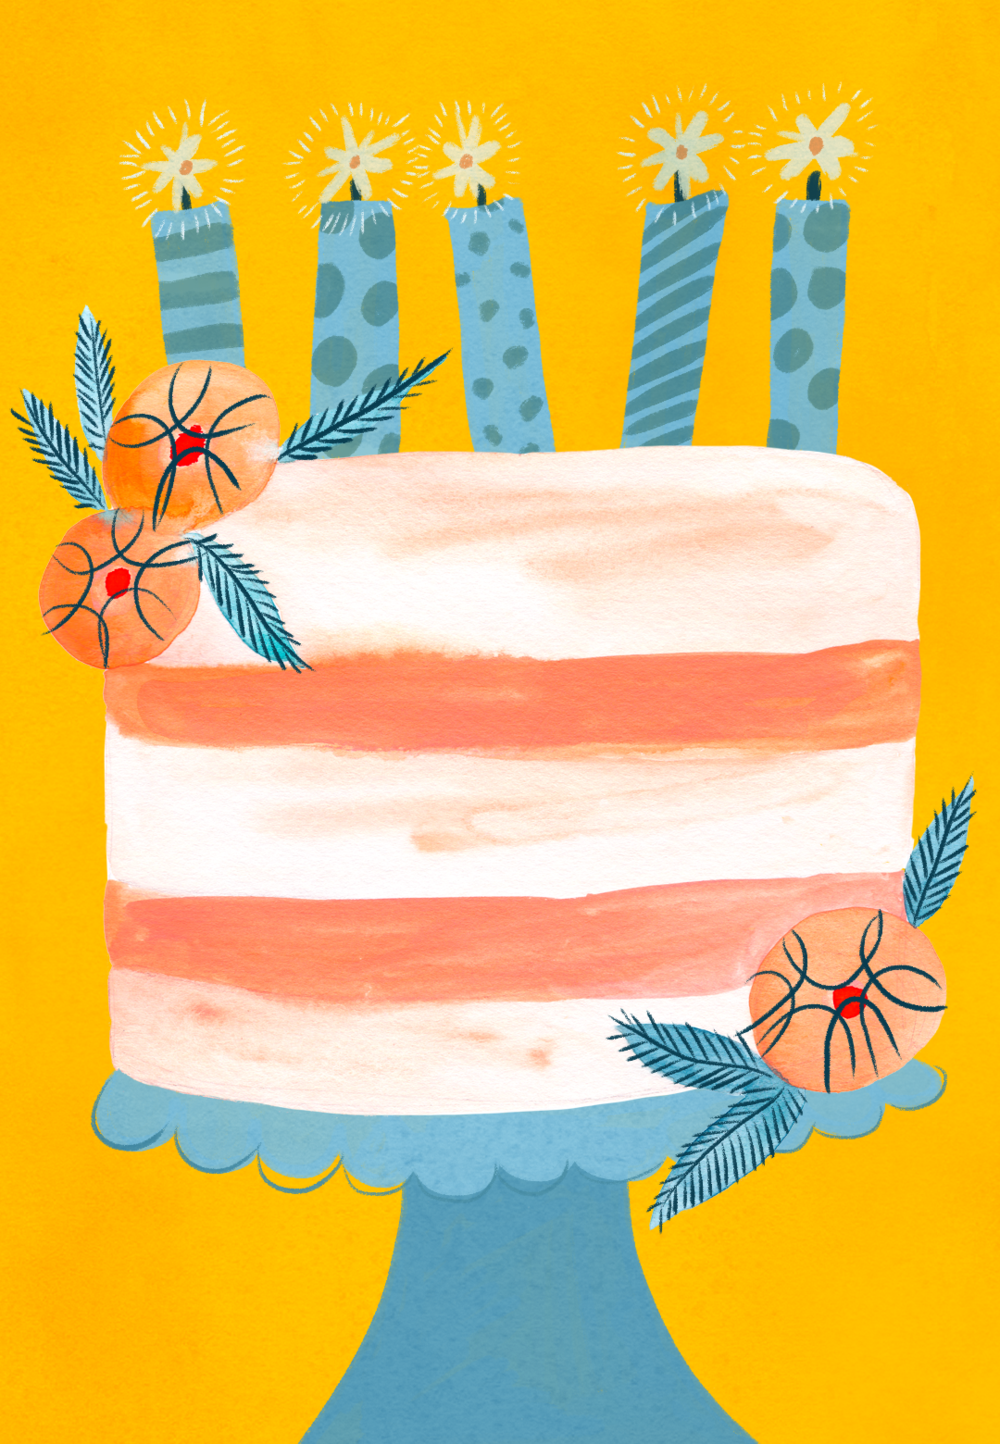 PatriceHorvathDesign_HappyBirthdayToYouCake_Card.png